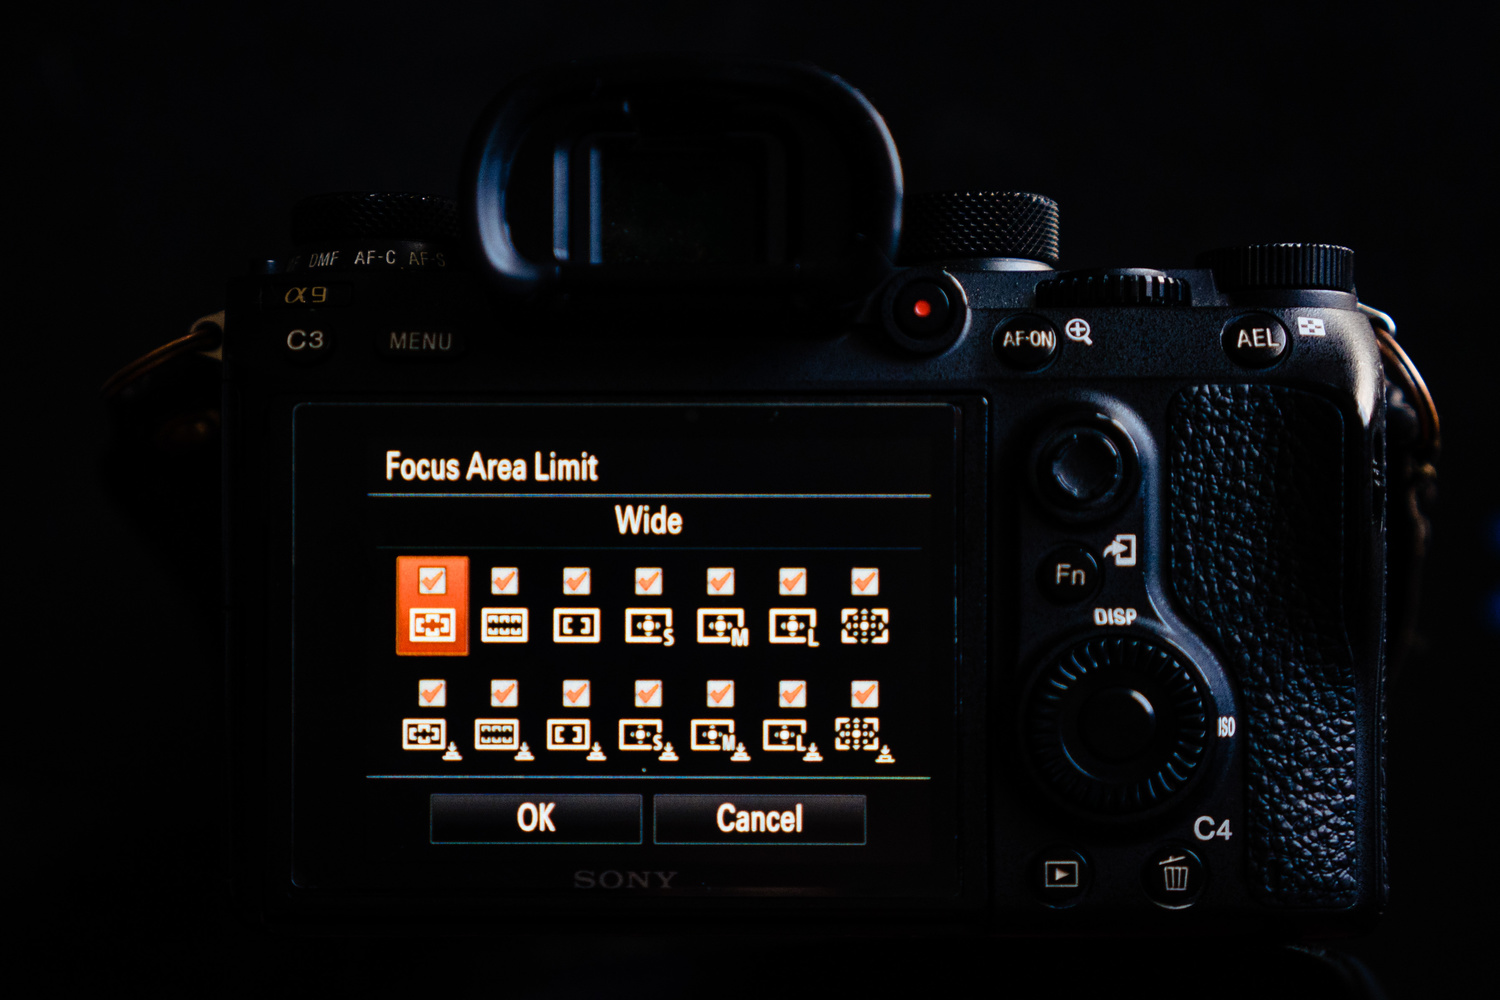 Sony a9 Firmware Update 5 0: What I Love and What's Still Missing